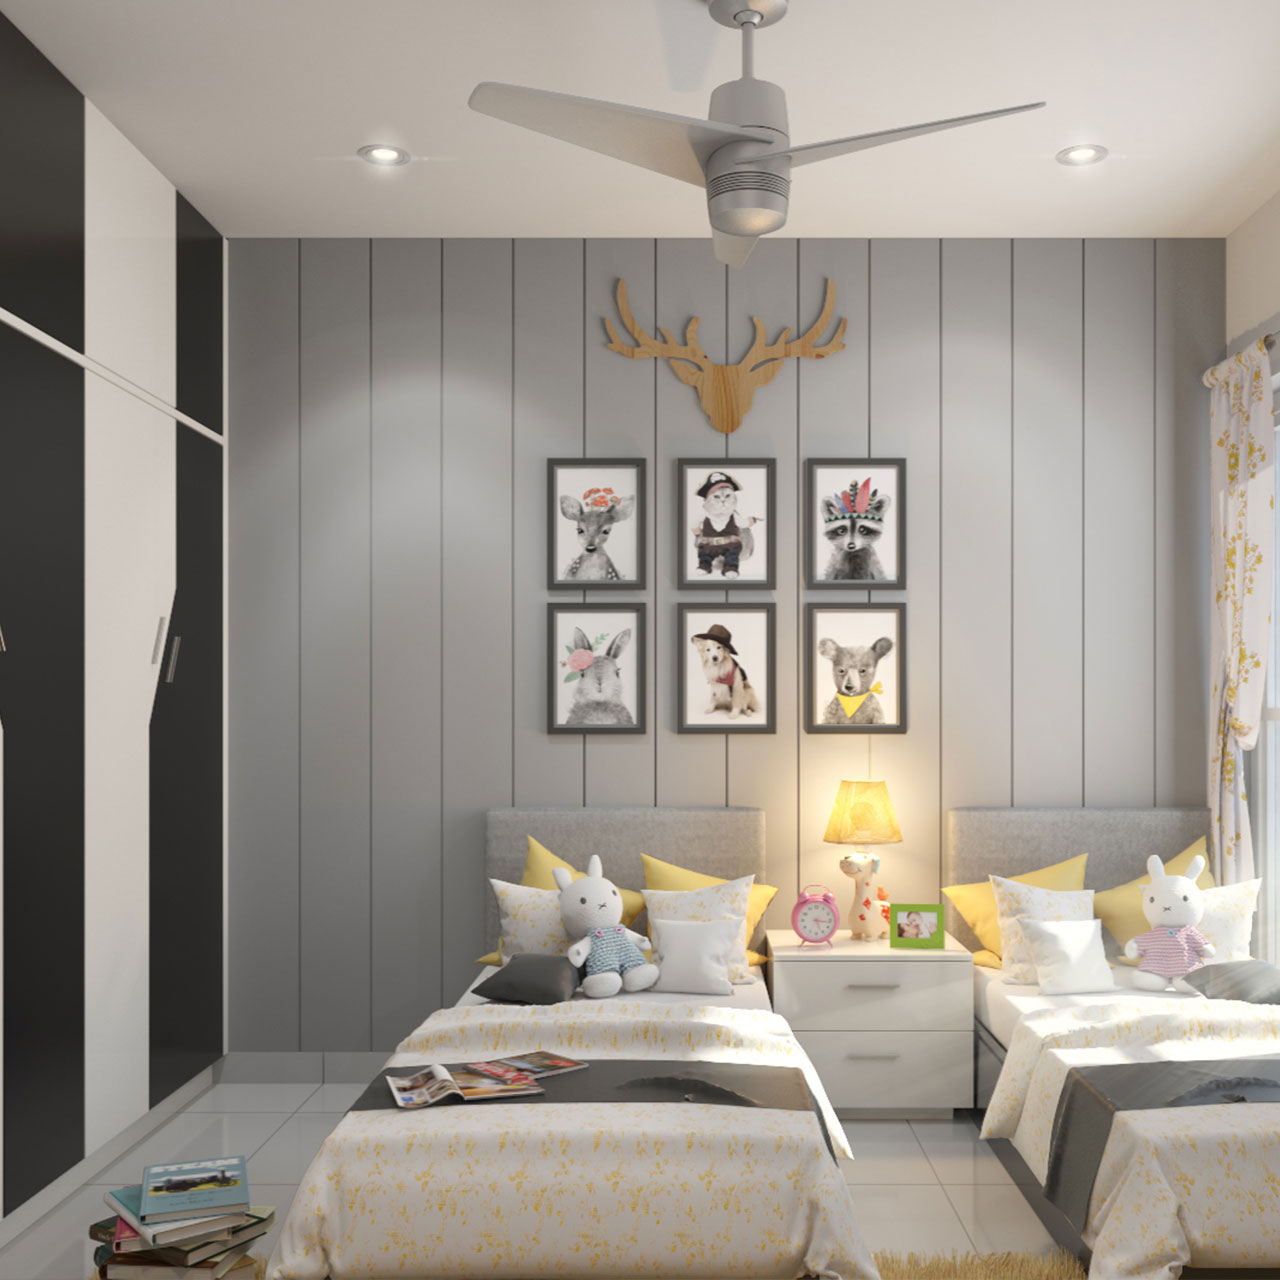 Baby bedroom where It reminds them of castles, fairies, secret gardens, the night skies and journeying into a dream in kids bedroom design